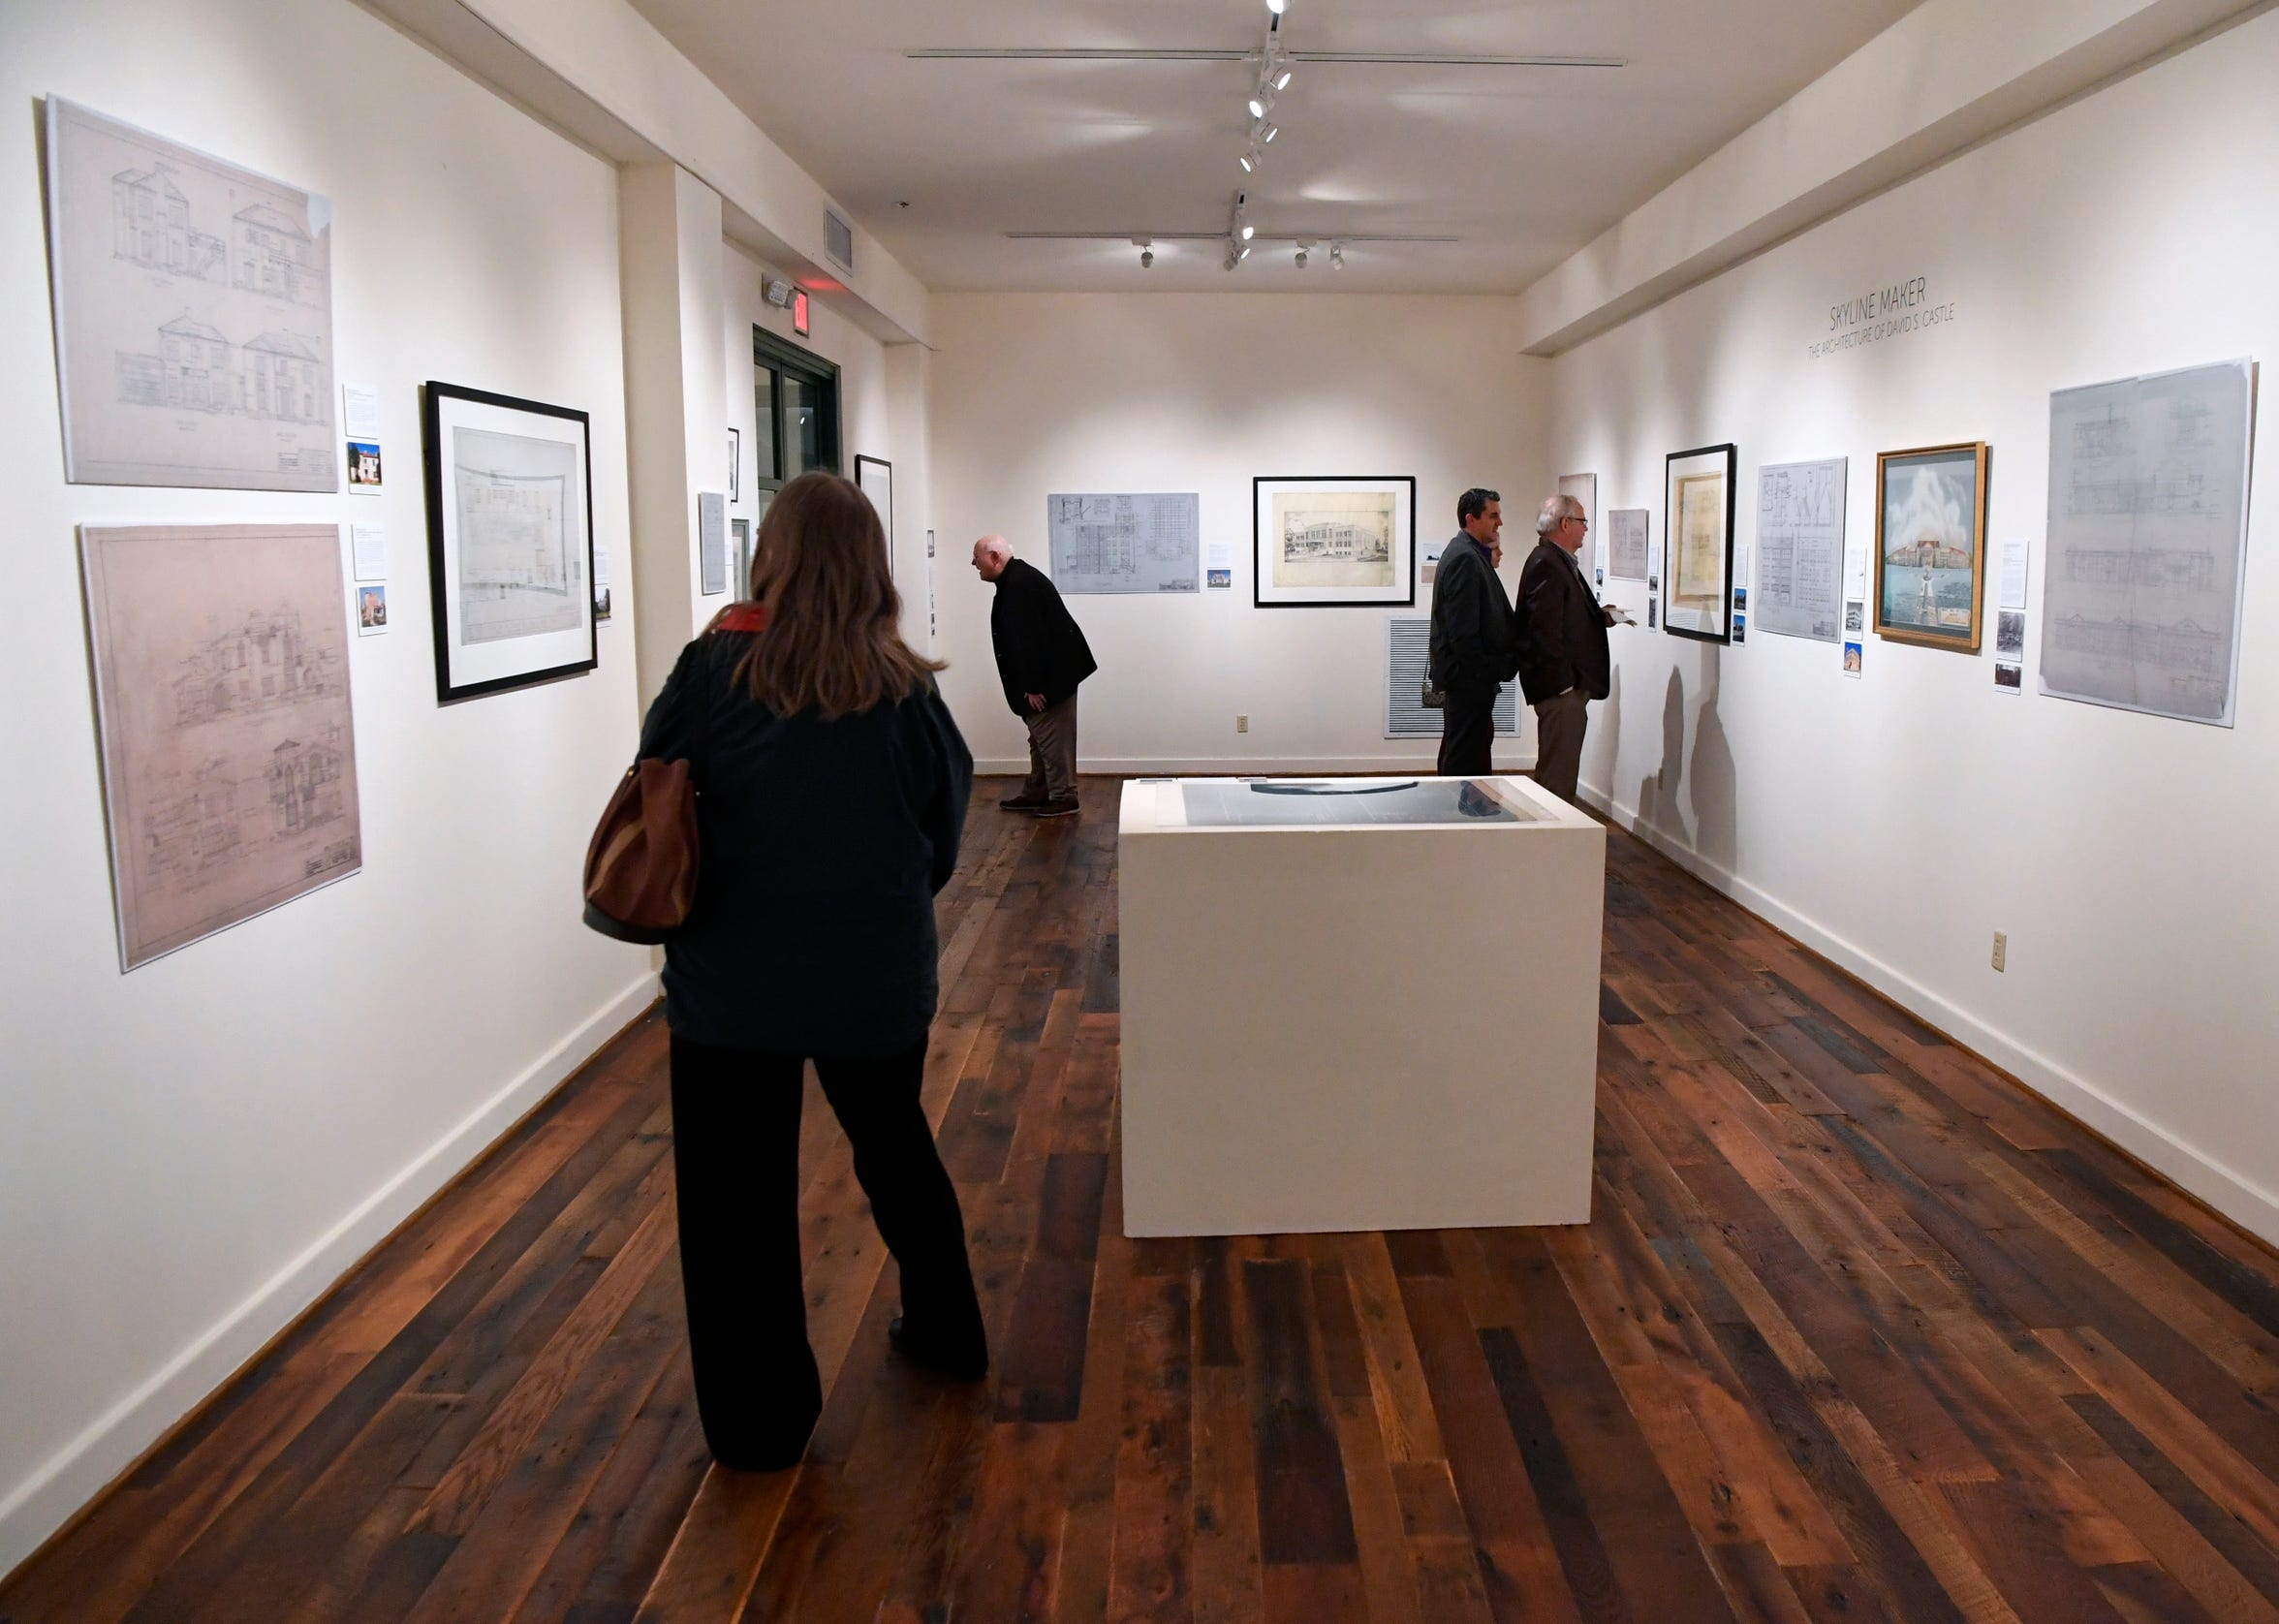 """Visitors to the Grace Museum Thursday Nov. 8, 2018 peruse the new exhibit, """"Skyline Maker: The Architecture of David S. Castle."""" Castle was a local architect who designed the Federal Building, Lincoln Middle School, Abilene High School, and other public buildings in the Key City."""